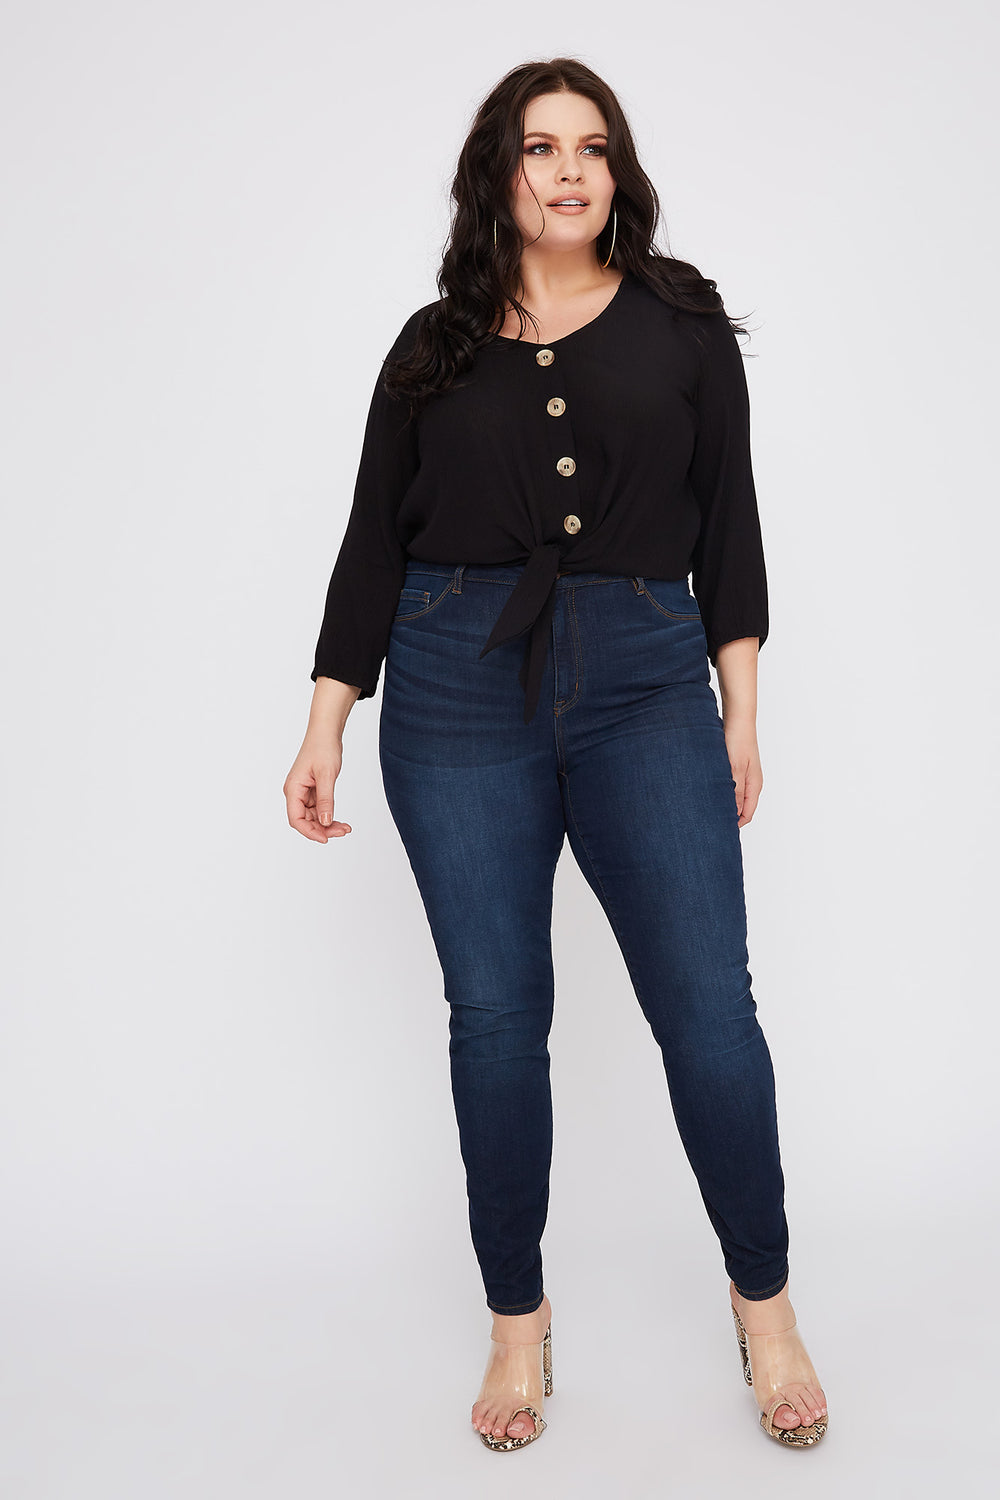 Refuge Plus Size Dark Wash High-Rise Jegging Dark Blue